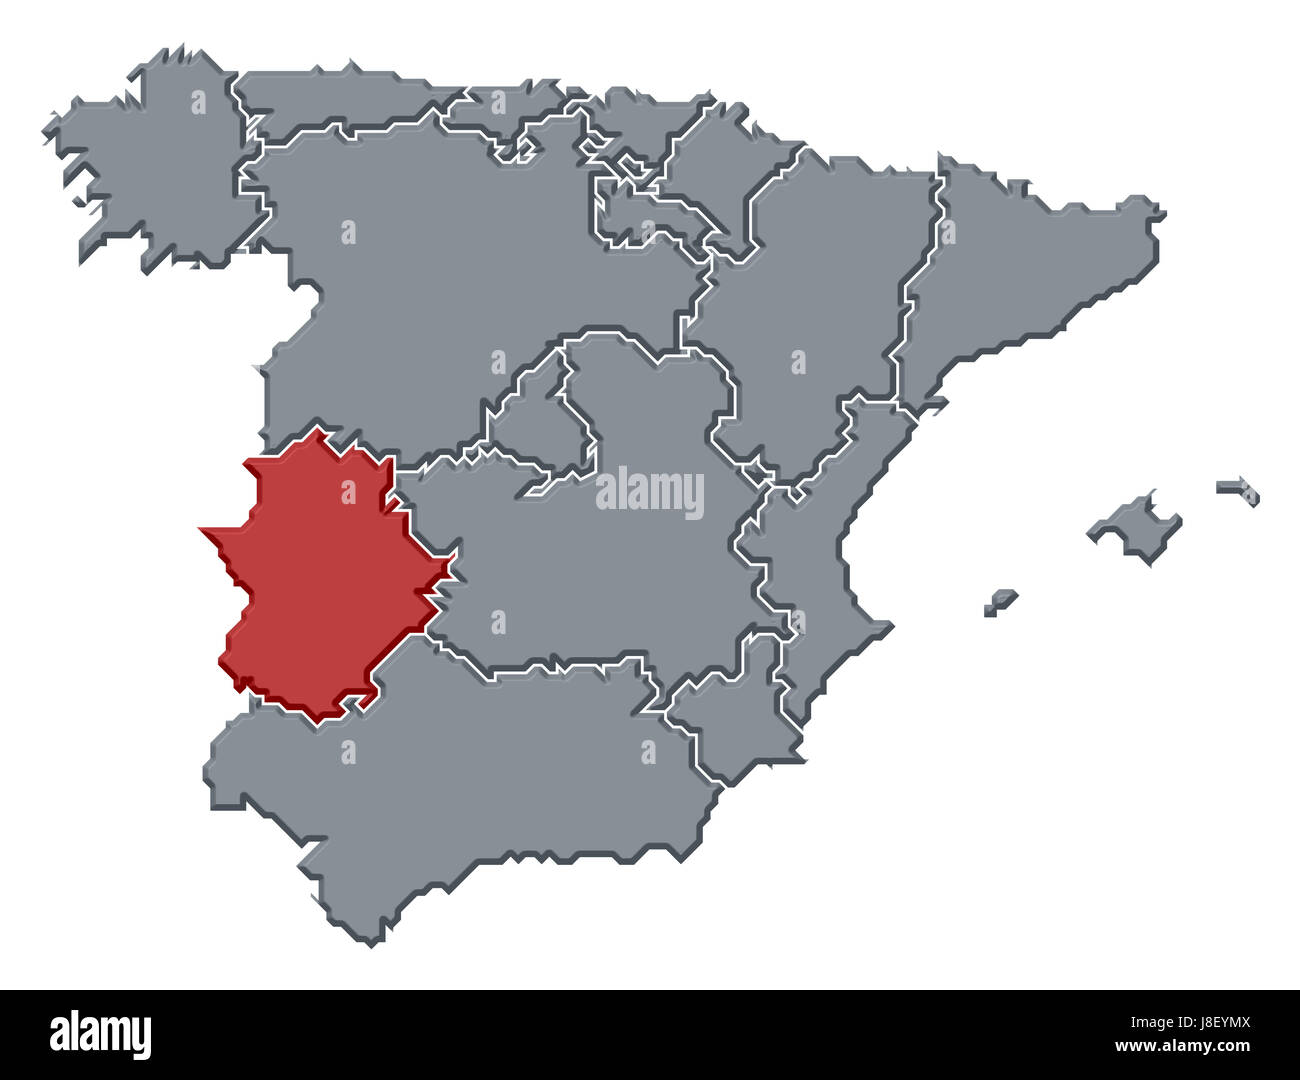 Spain On Map Of World.Spain Map Atlas Map Of The World Profile Symbolic Political